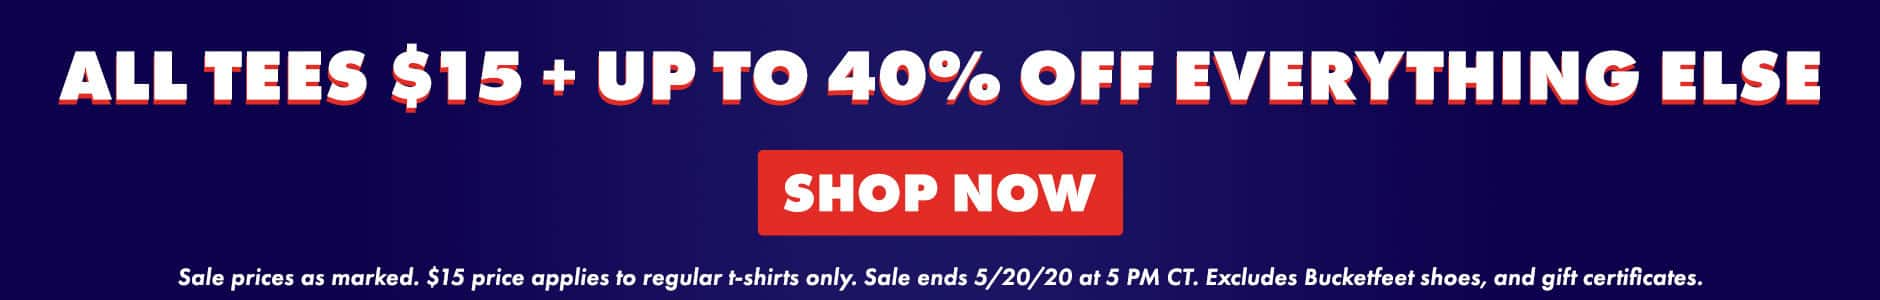 Shop $15 Tees plus up to 40% off everything else